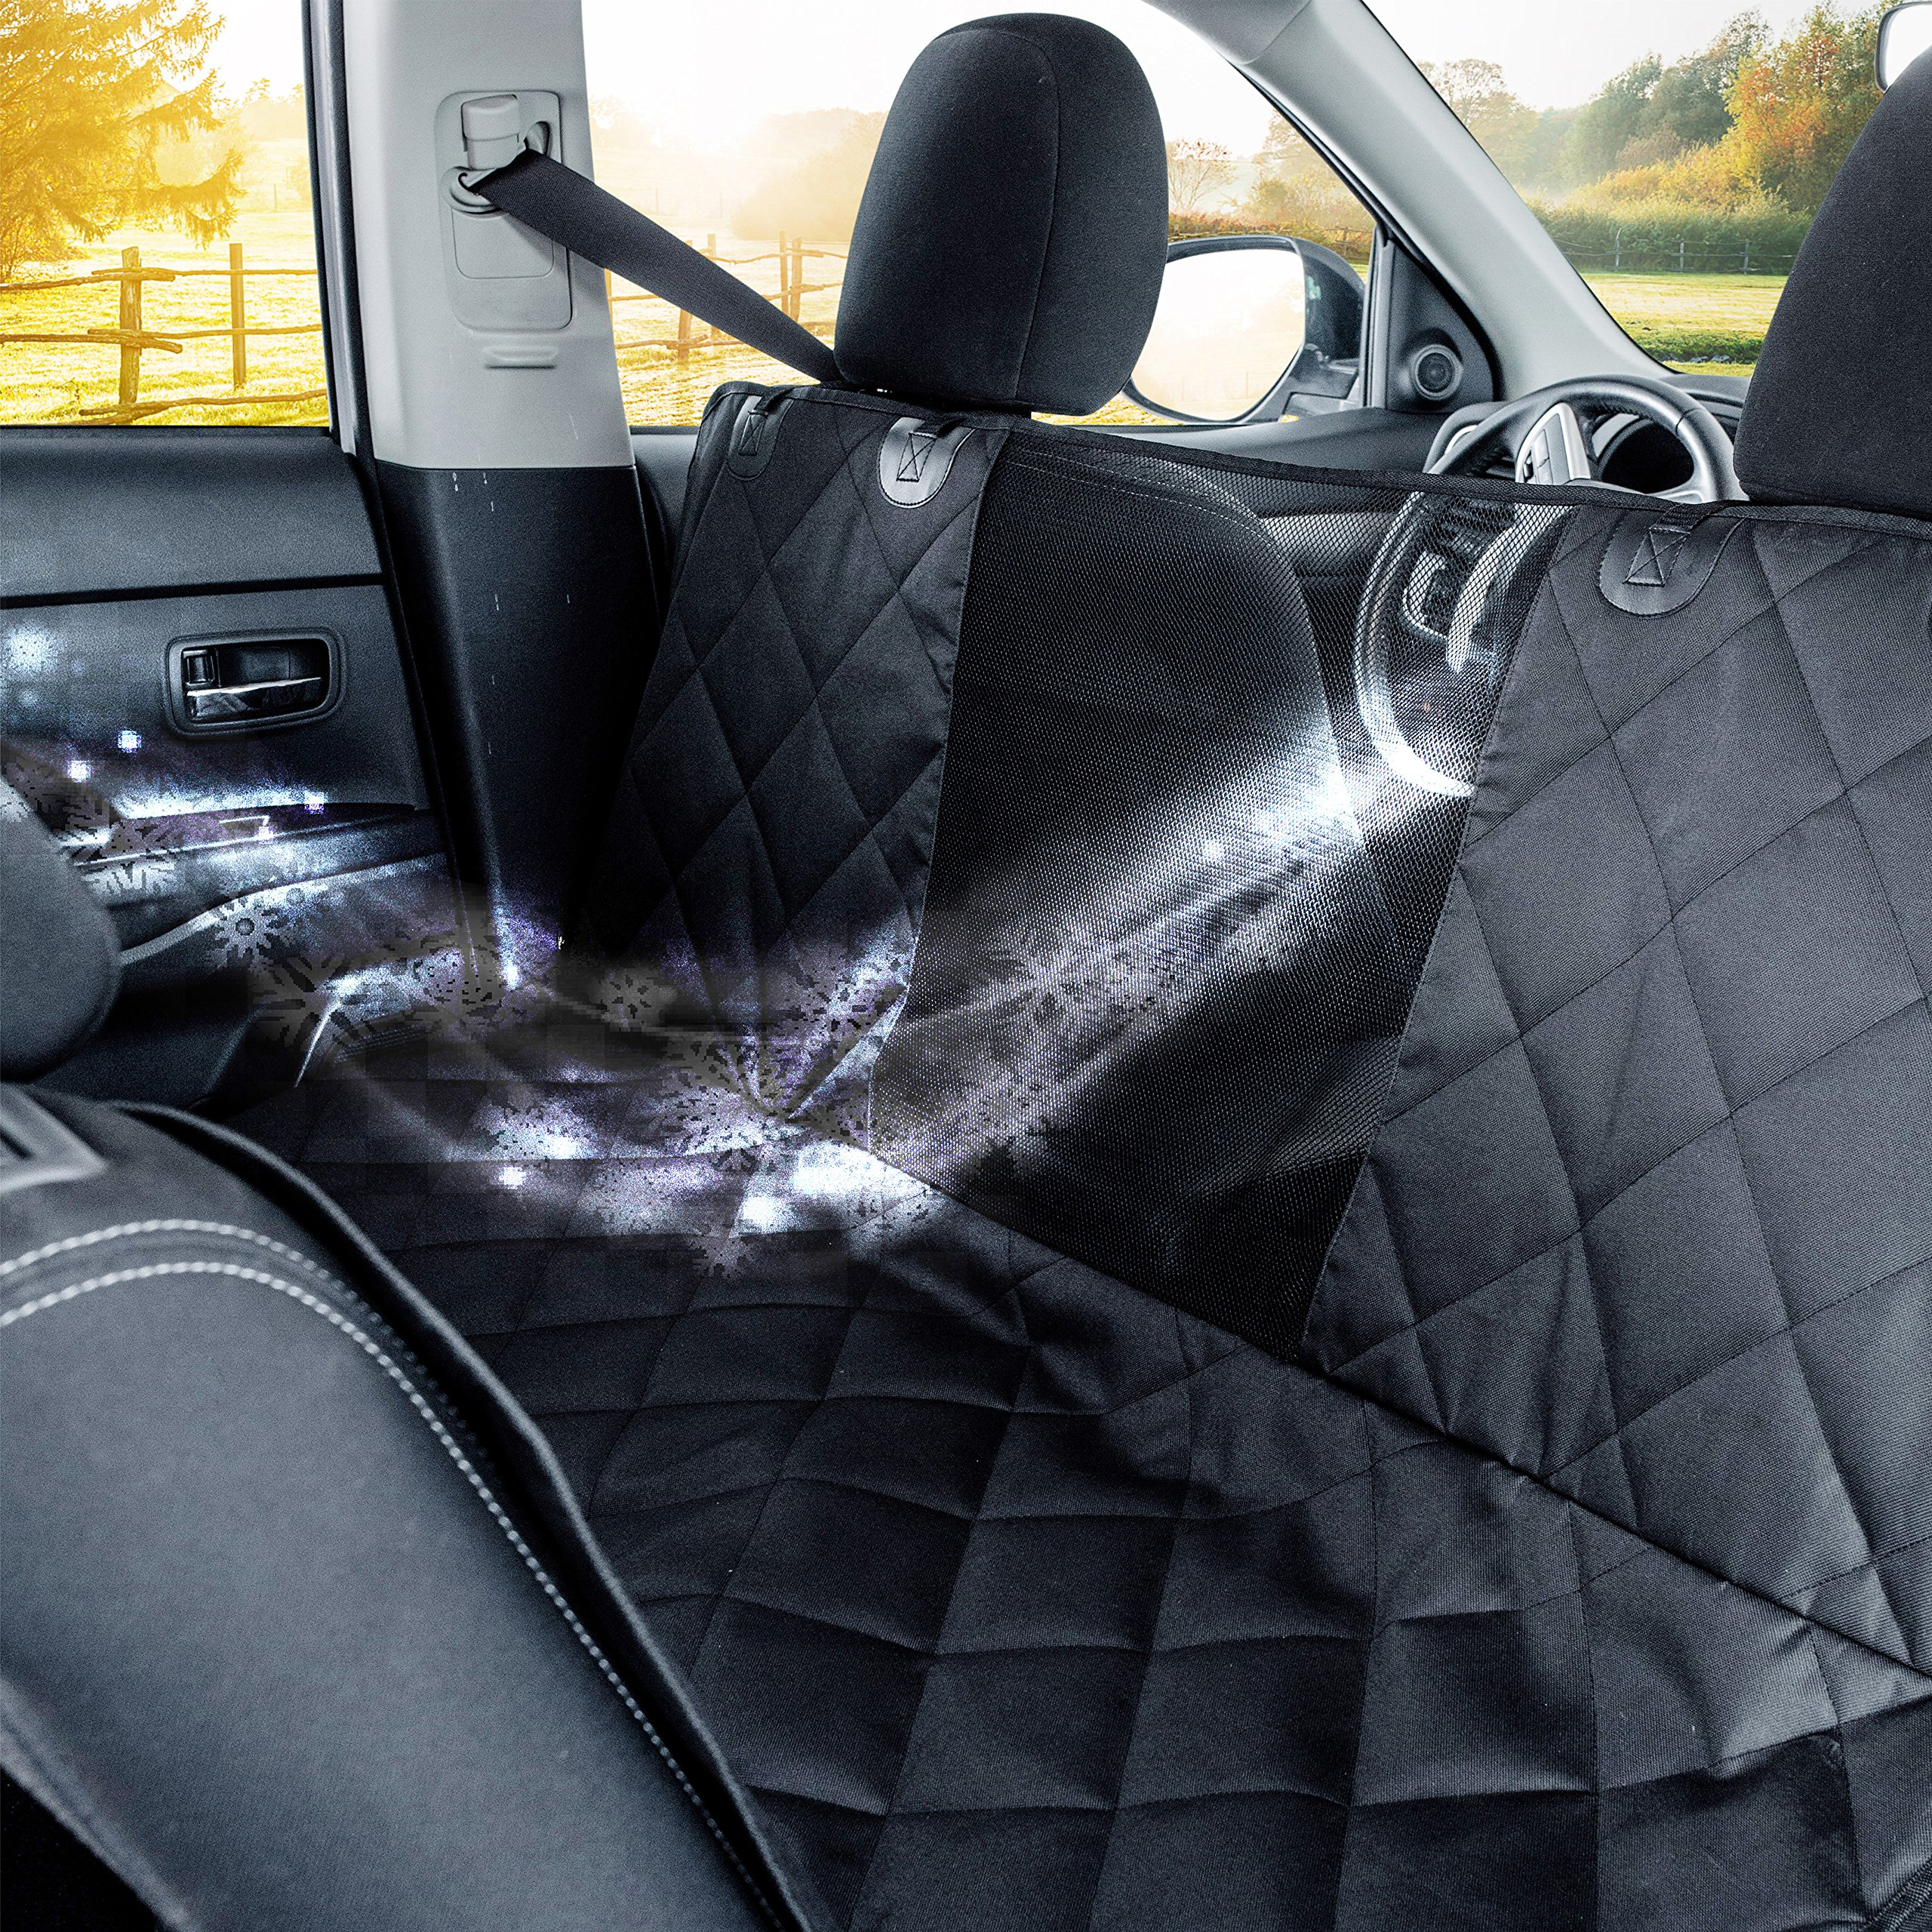 PREMIUM Dog Car Seat Cover Hammock Style And Cargo Liner For Cars, Trucks And Suv's. The Original Design You Can See Your Pet & Your Pet Sees You with the ClearView Window- Keeps Your Pet Calm.